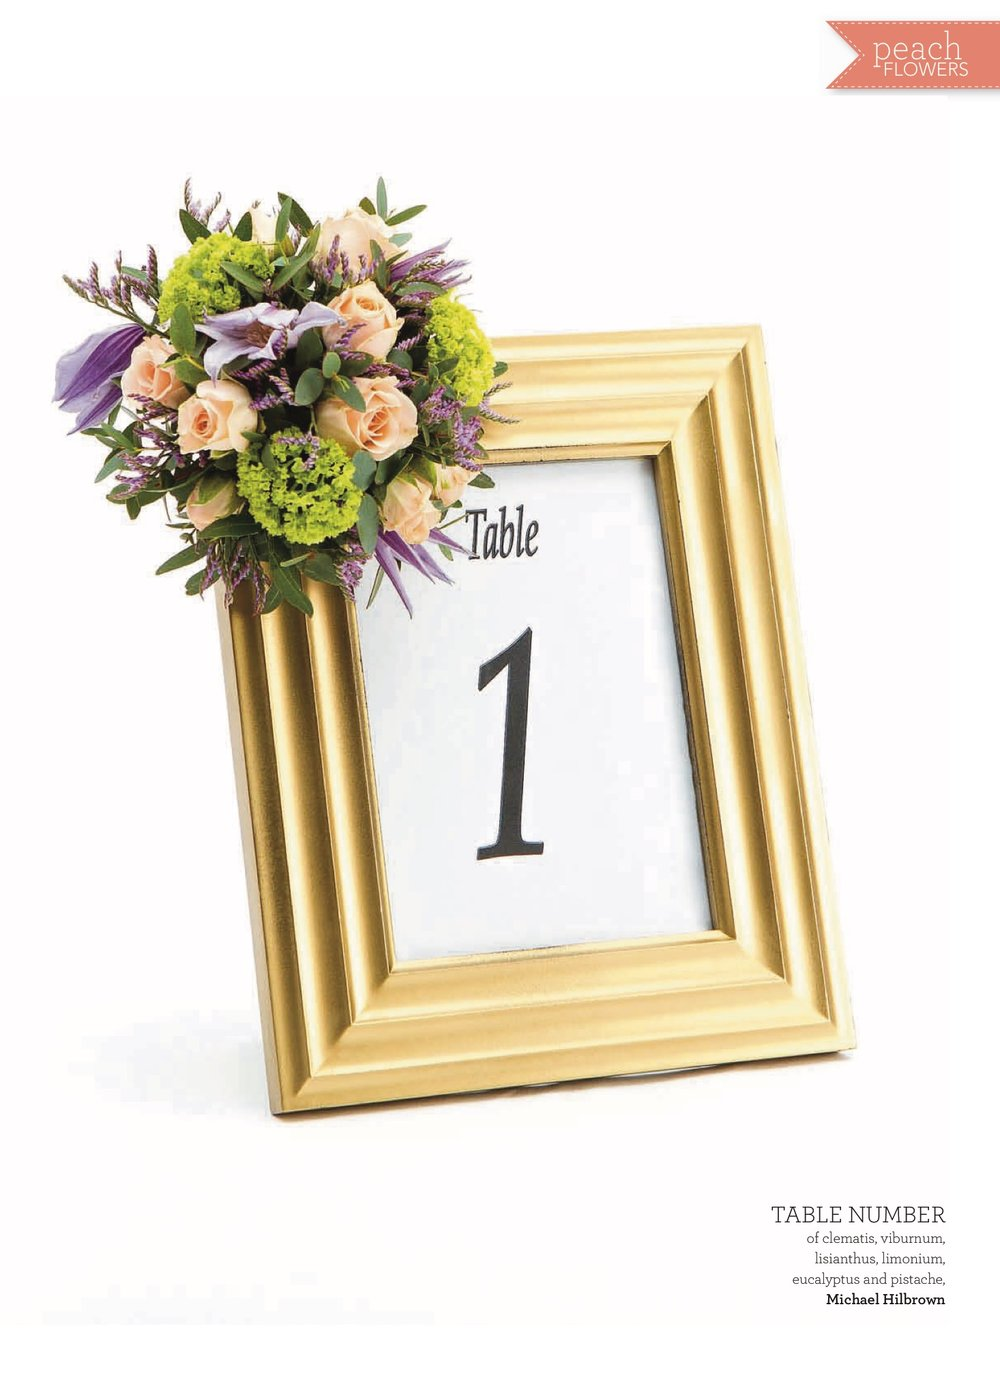 Michael Hilbrown Florist - Table Number Floral Design - Wedding Flowers Magazine July & August 2016.jpg